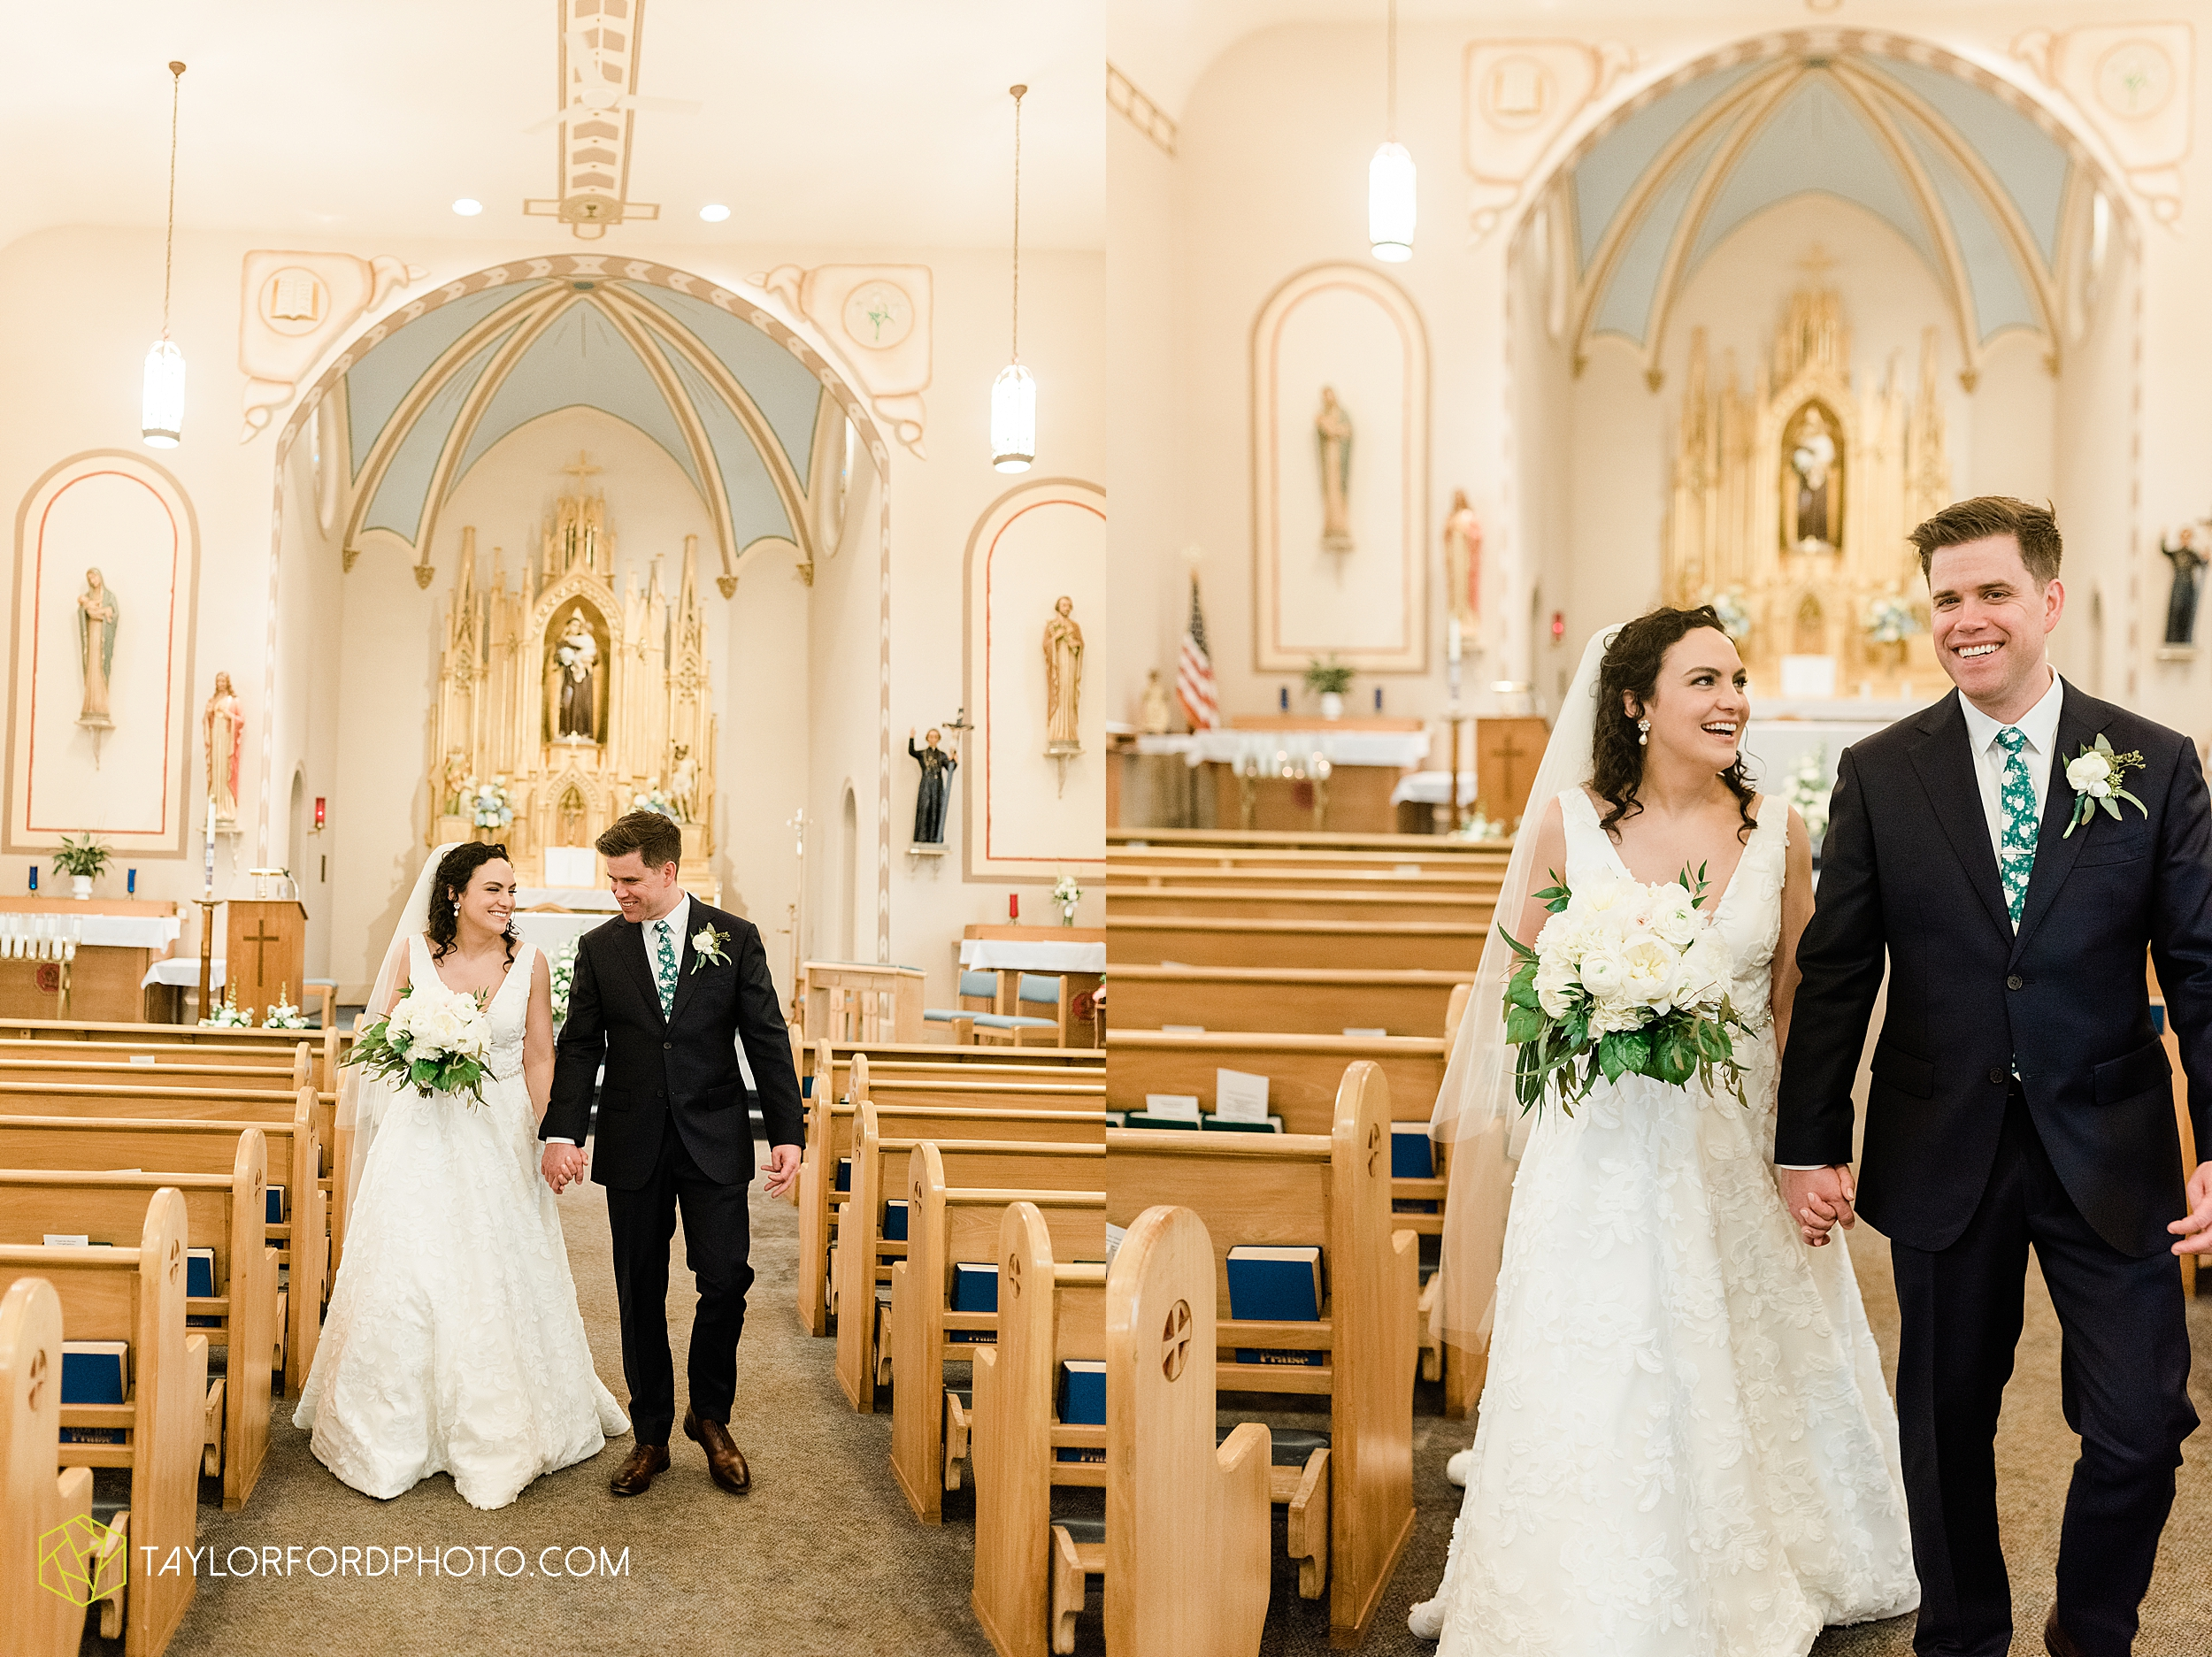 fort-recovery-ohio-saint-anthony-church-columbia-city-joseph-decuis-farmstead-tri-lakes-shriner-lake-wawasee-wedding-photographer-photography-taylor-ford-hirschy-photographer_2887.jpg